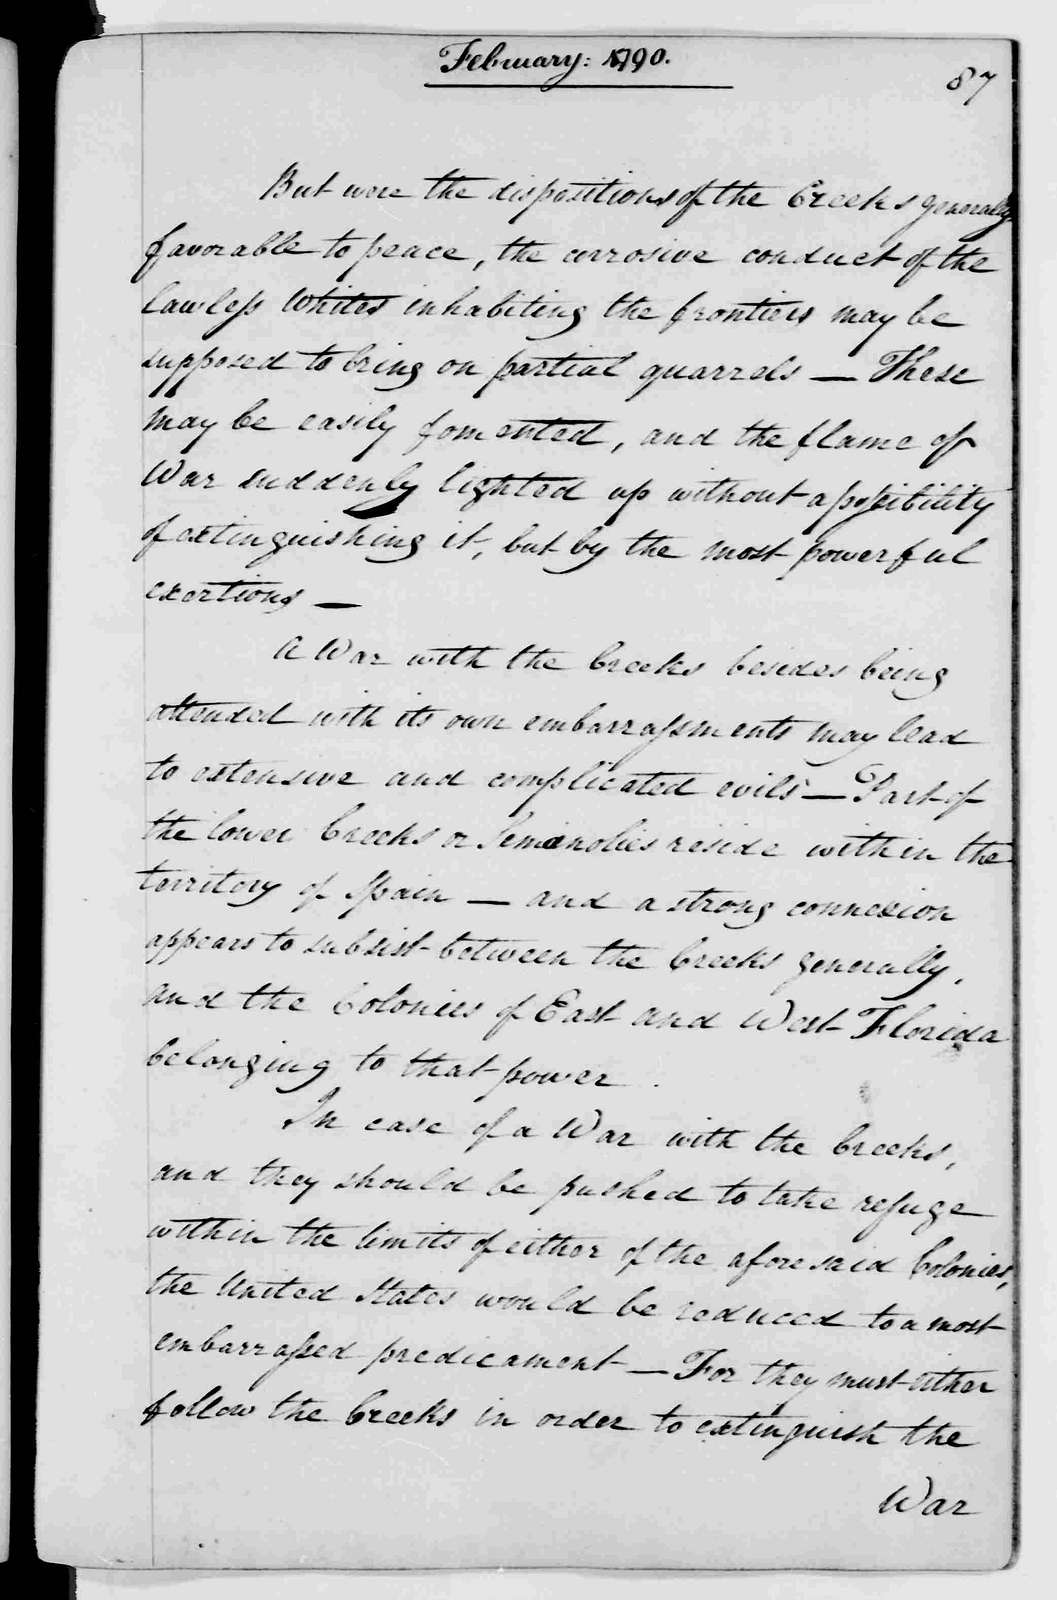 George Washington Papers, Series 2, Letterbooks 1754-1799: Letterbook 35, May 9, 1789 - March 29, 1792